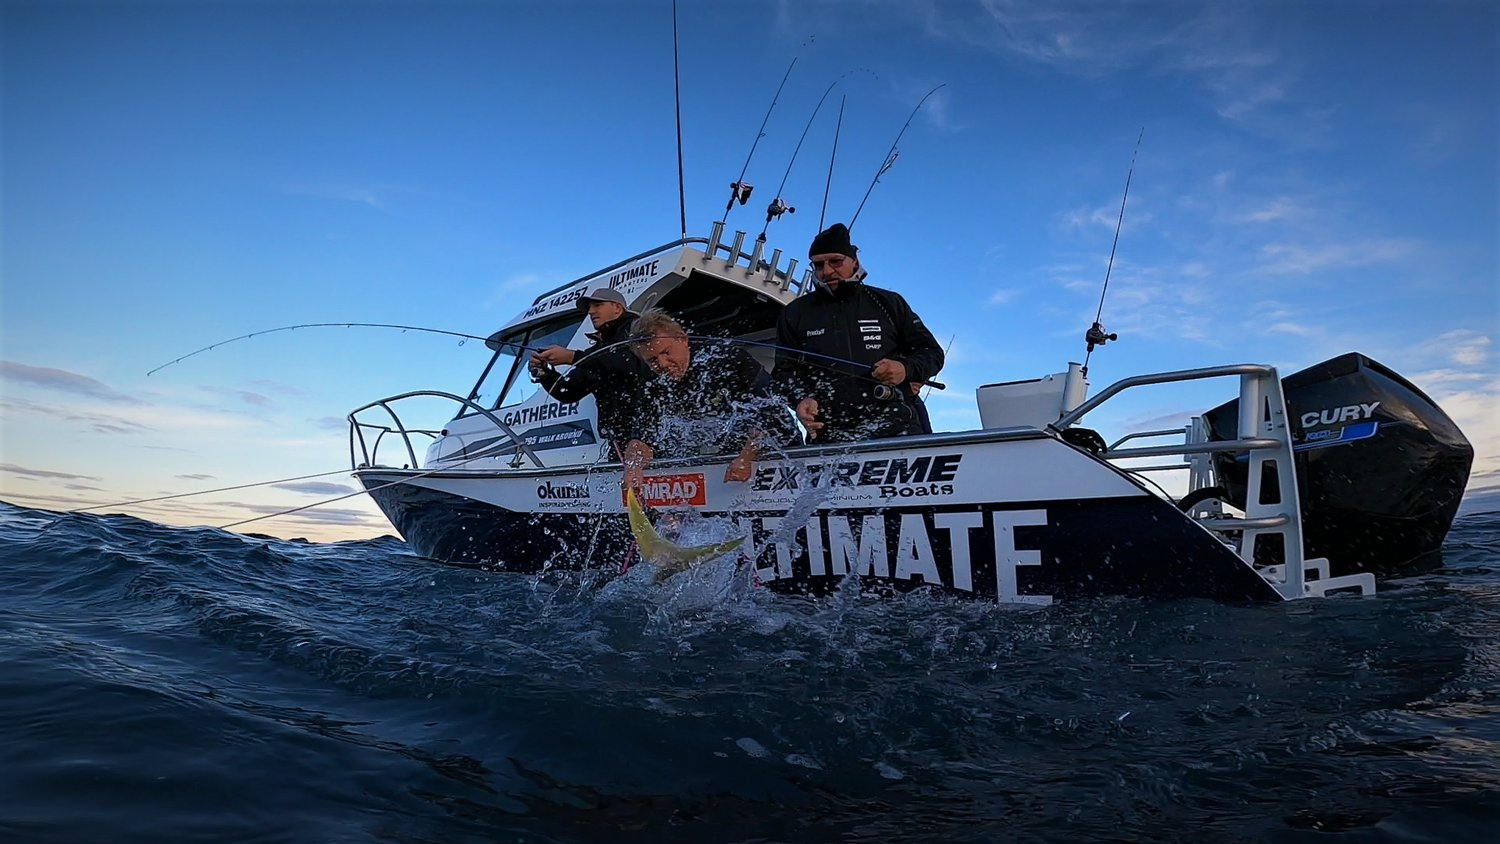 Ultimate Charters vessel out on New Zealand waters